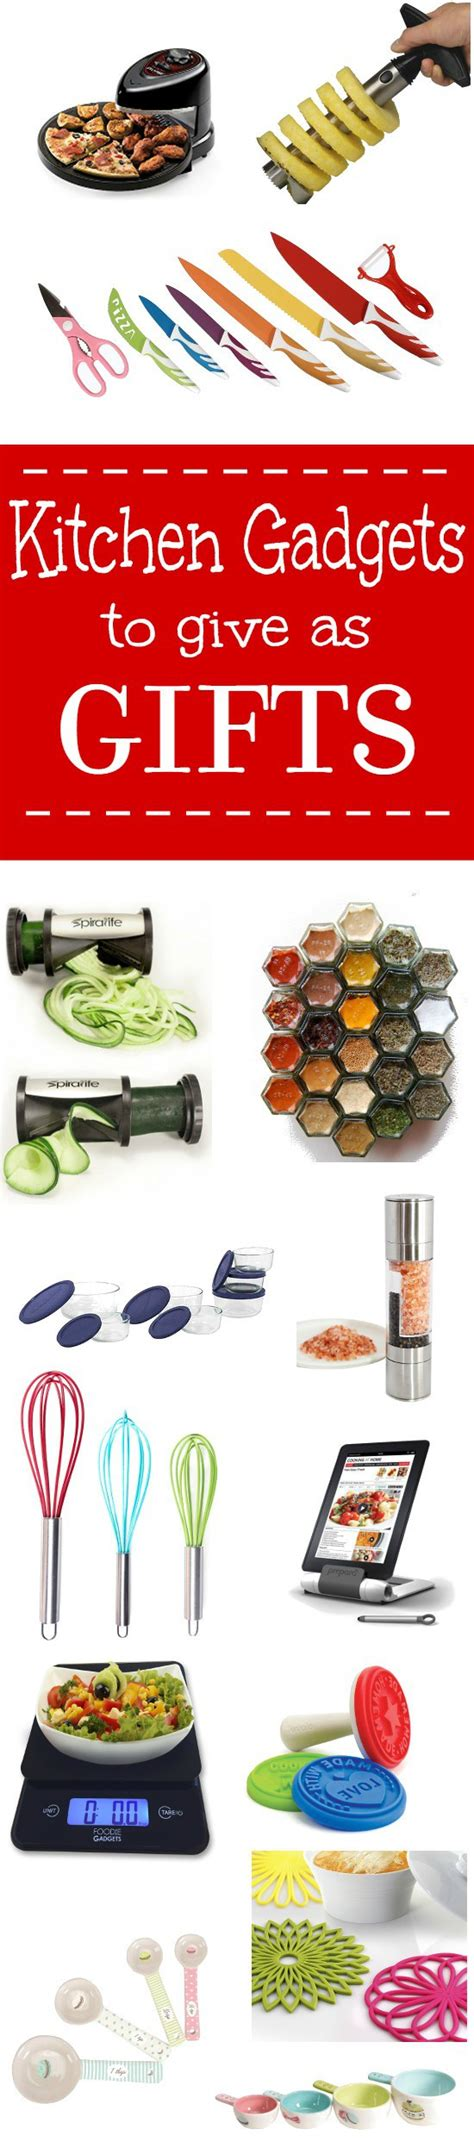 kitchen gadget gift ideas kitchen gadget gift ideas the gracious